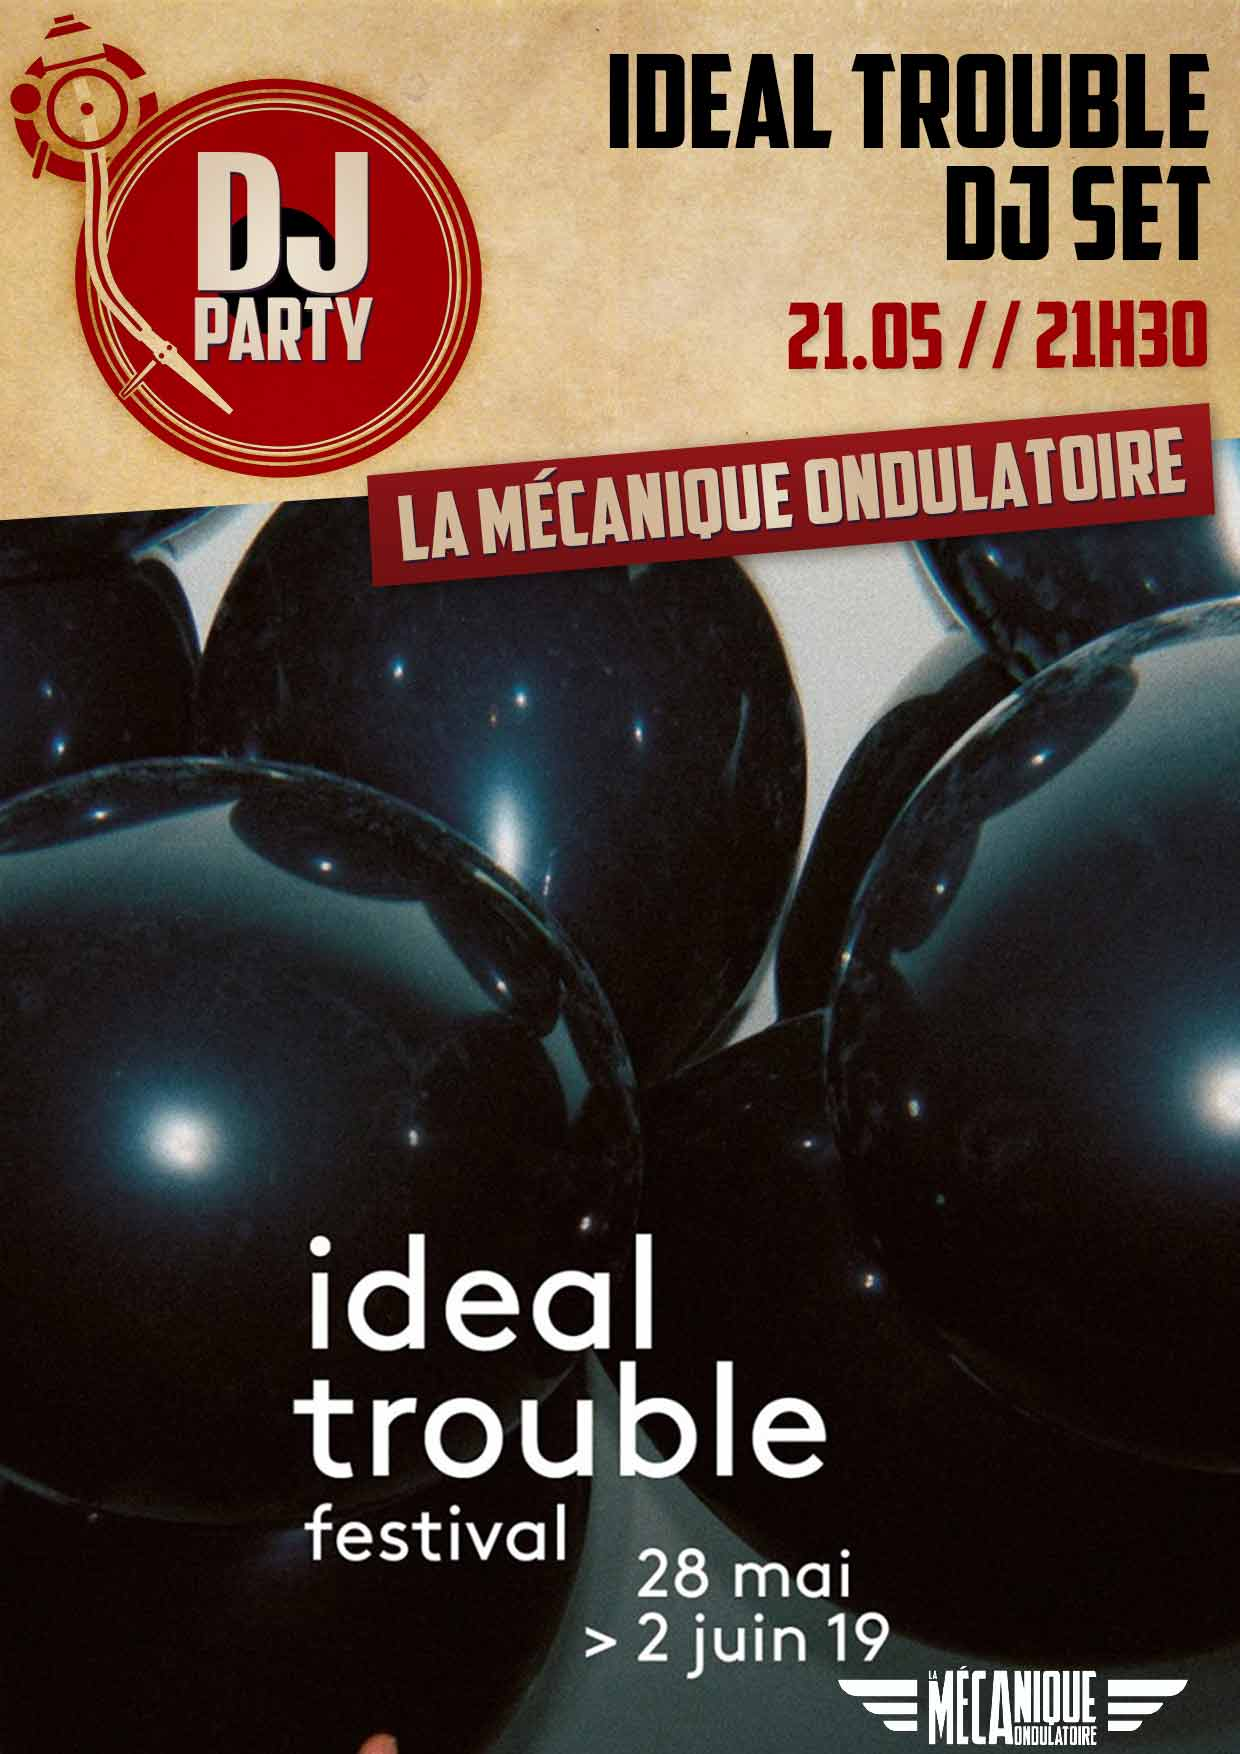 Ideal Trouble DJ SET // 21.05